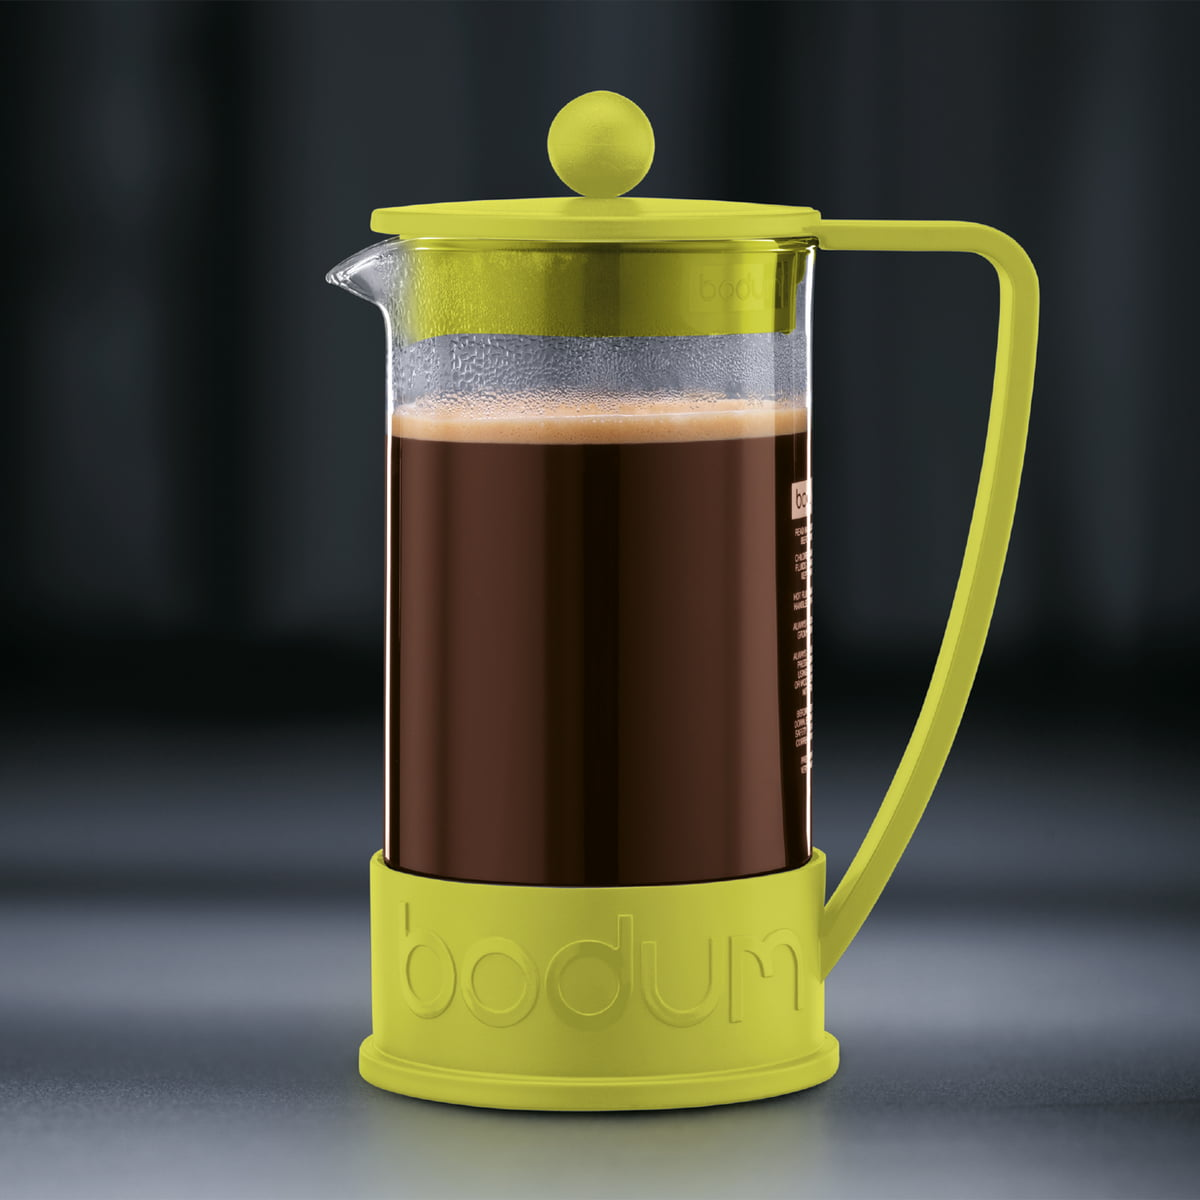 bodum brazil french press instructions